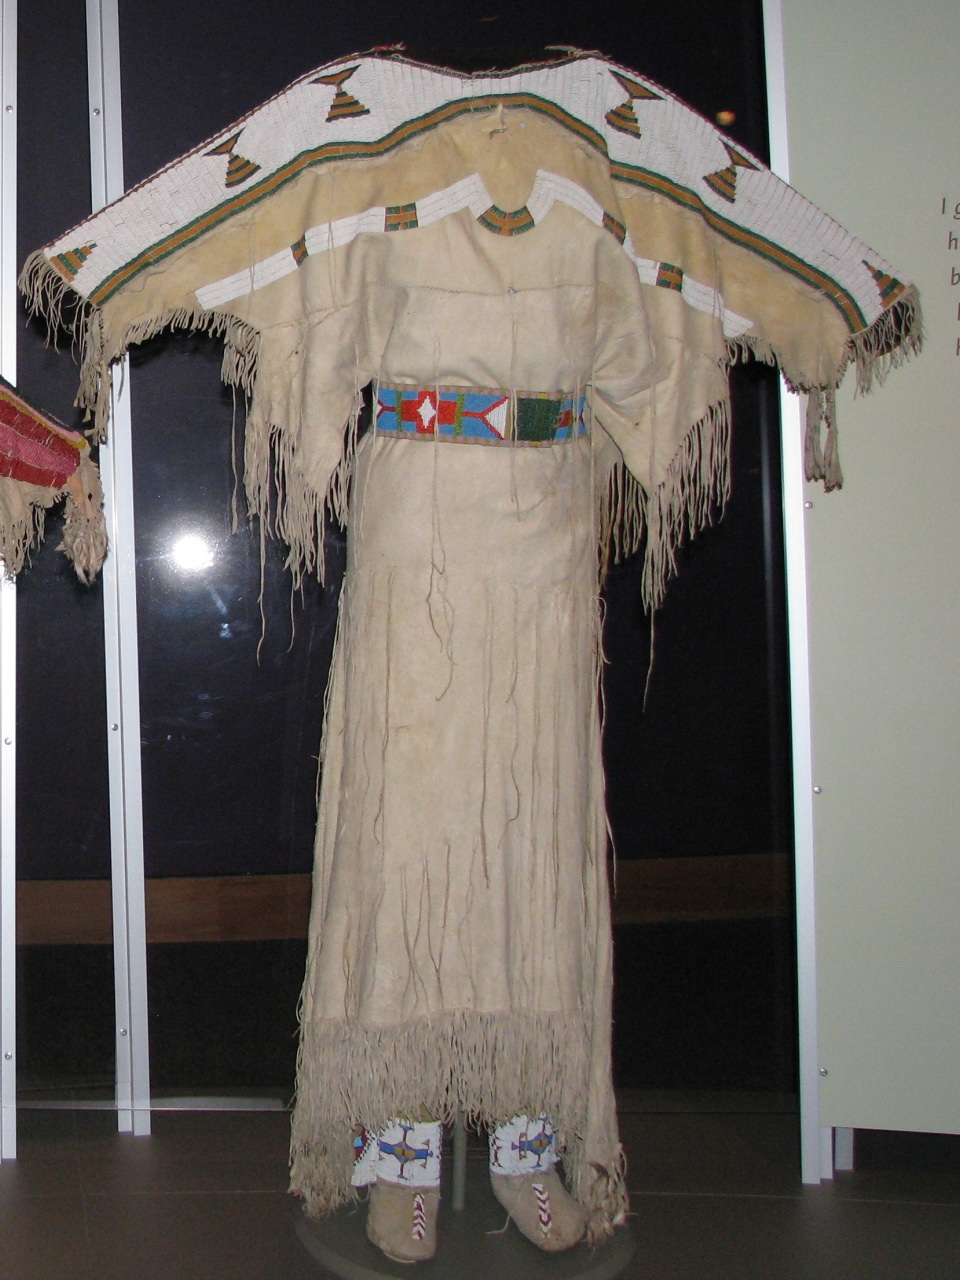 Shoshone Women's Clothing http://stitchinguphistory.blogspot.com/2011/07/details-and-tribal-variations-of-two.html